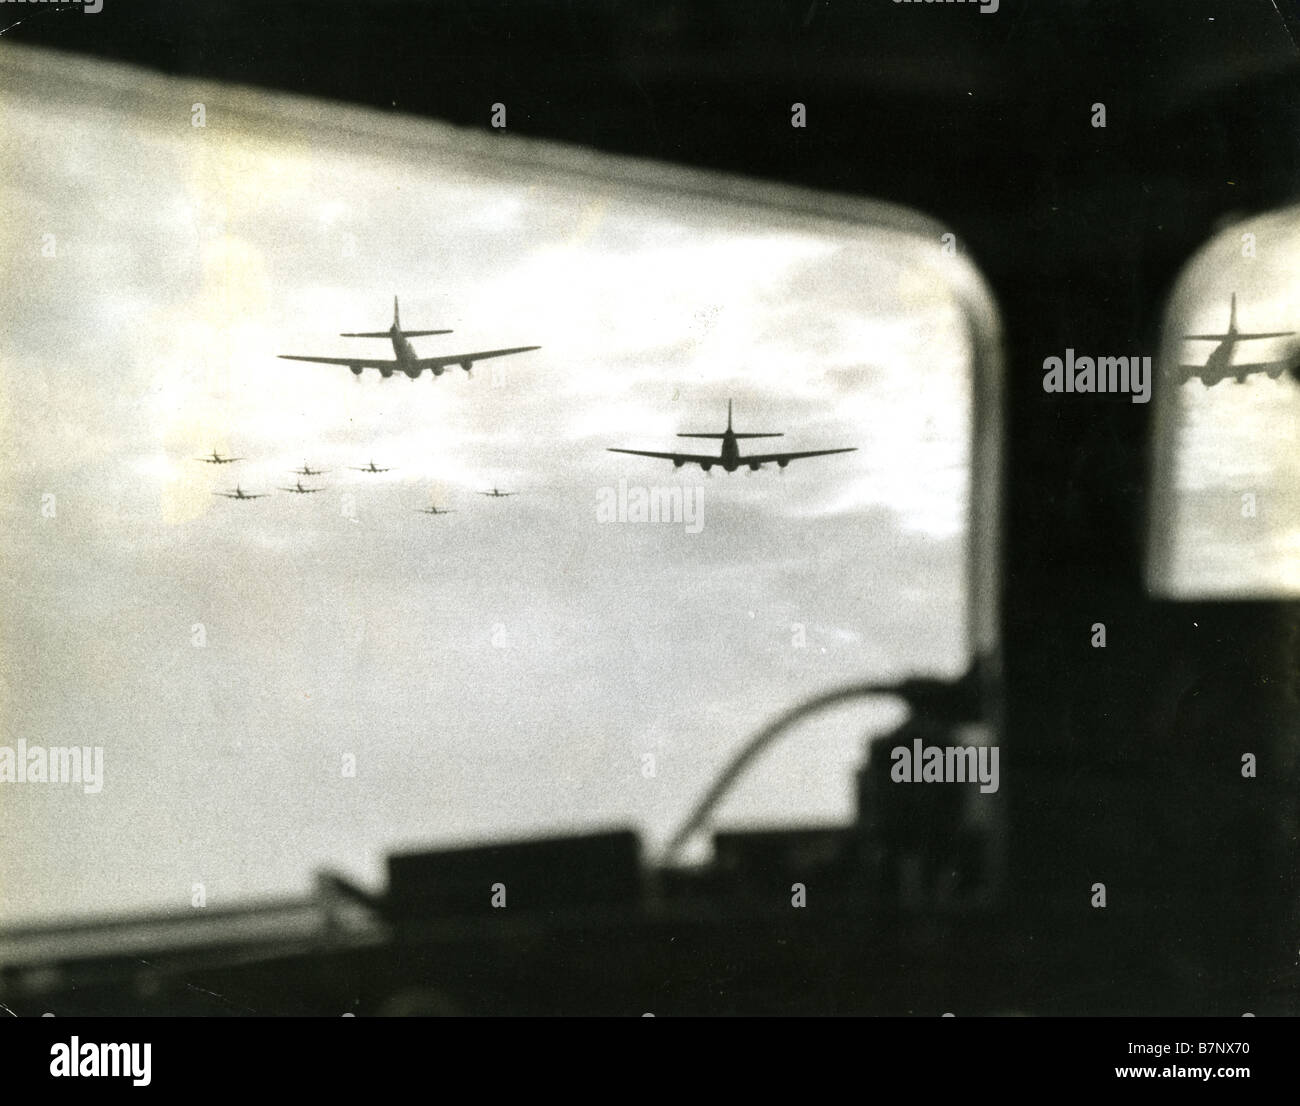 BOEING B-17F Flying Fortresses of the 32nd Bomb Squadron head towards an Italian target from their Tunisian base Stock Photo